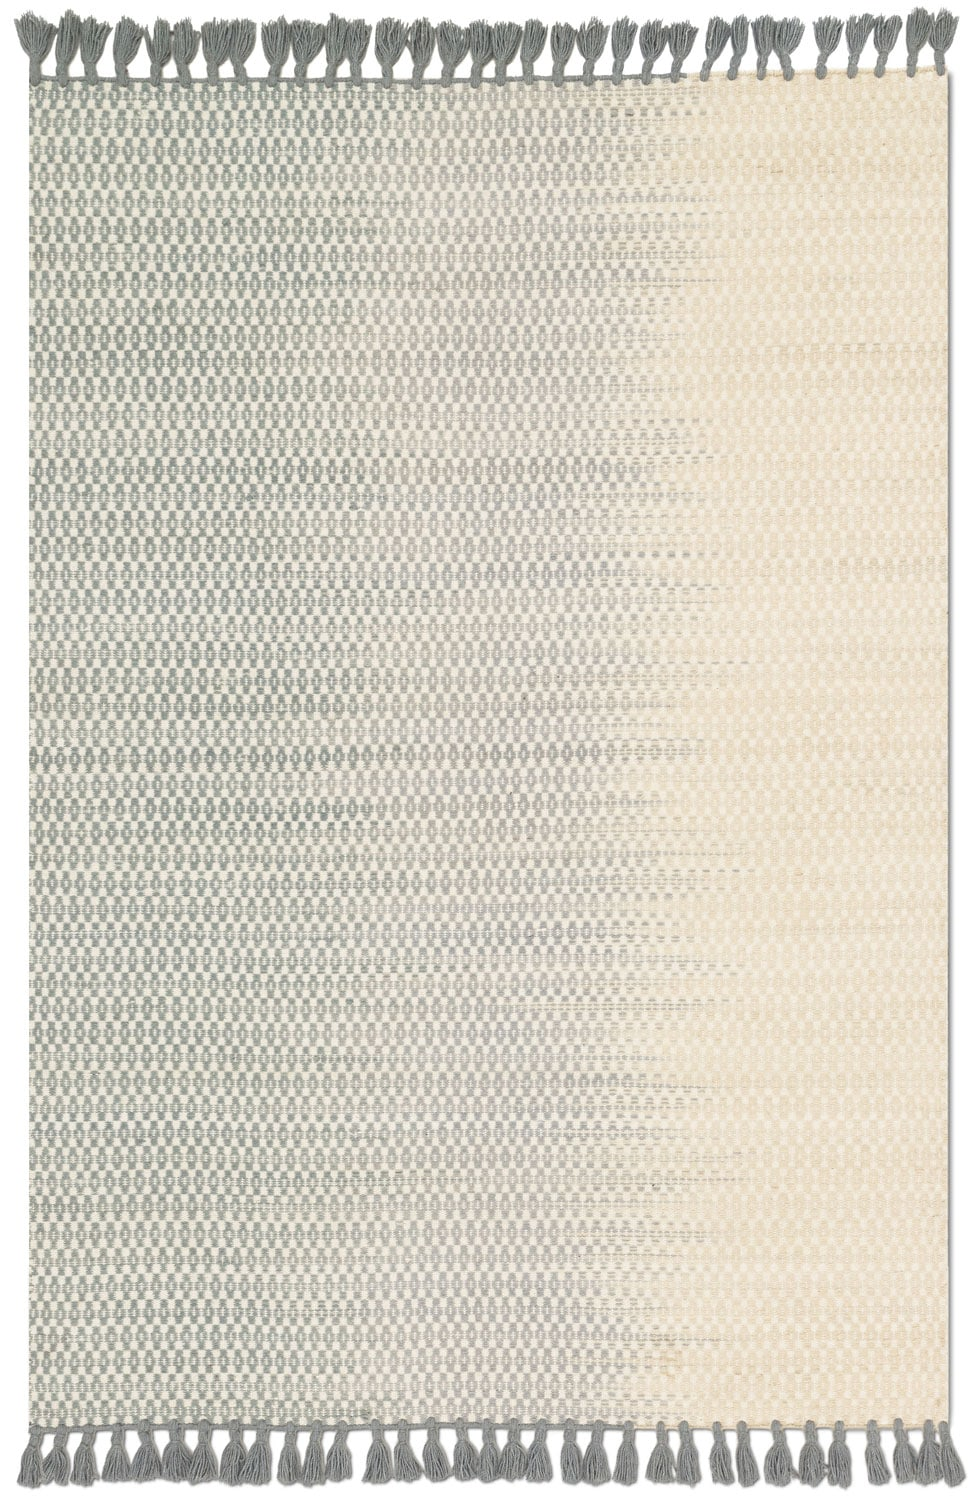 Chantilly 4' x 6' Rug - Ivory and Mist